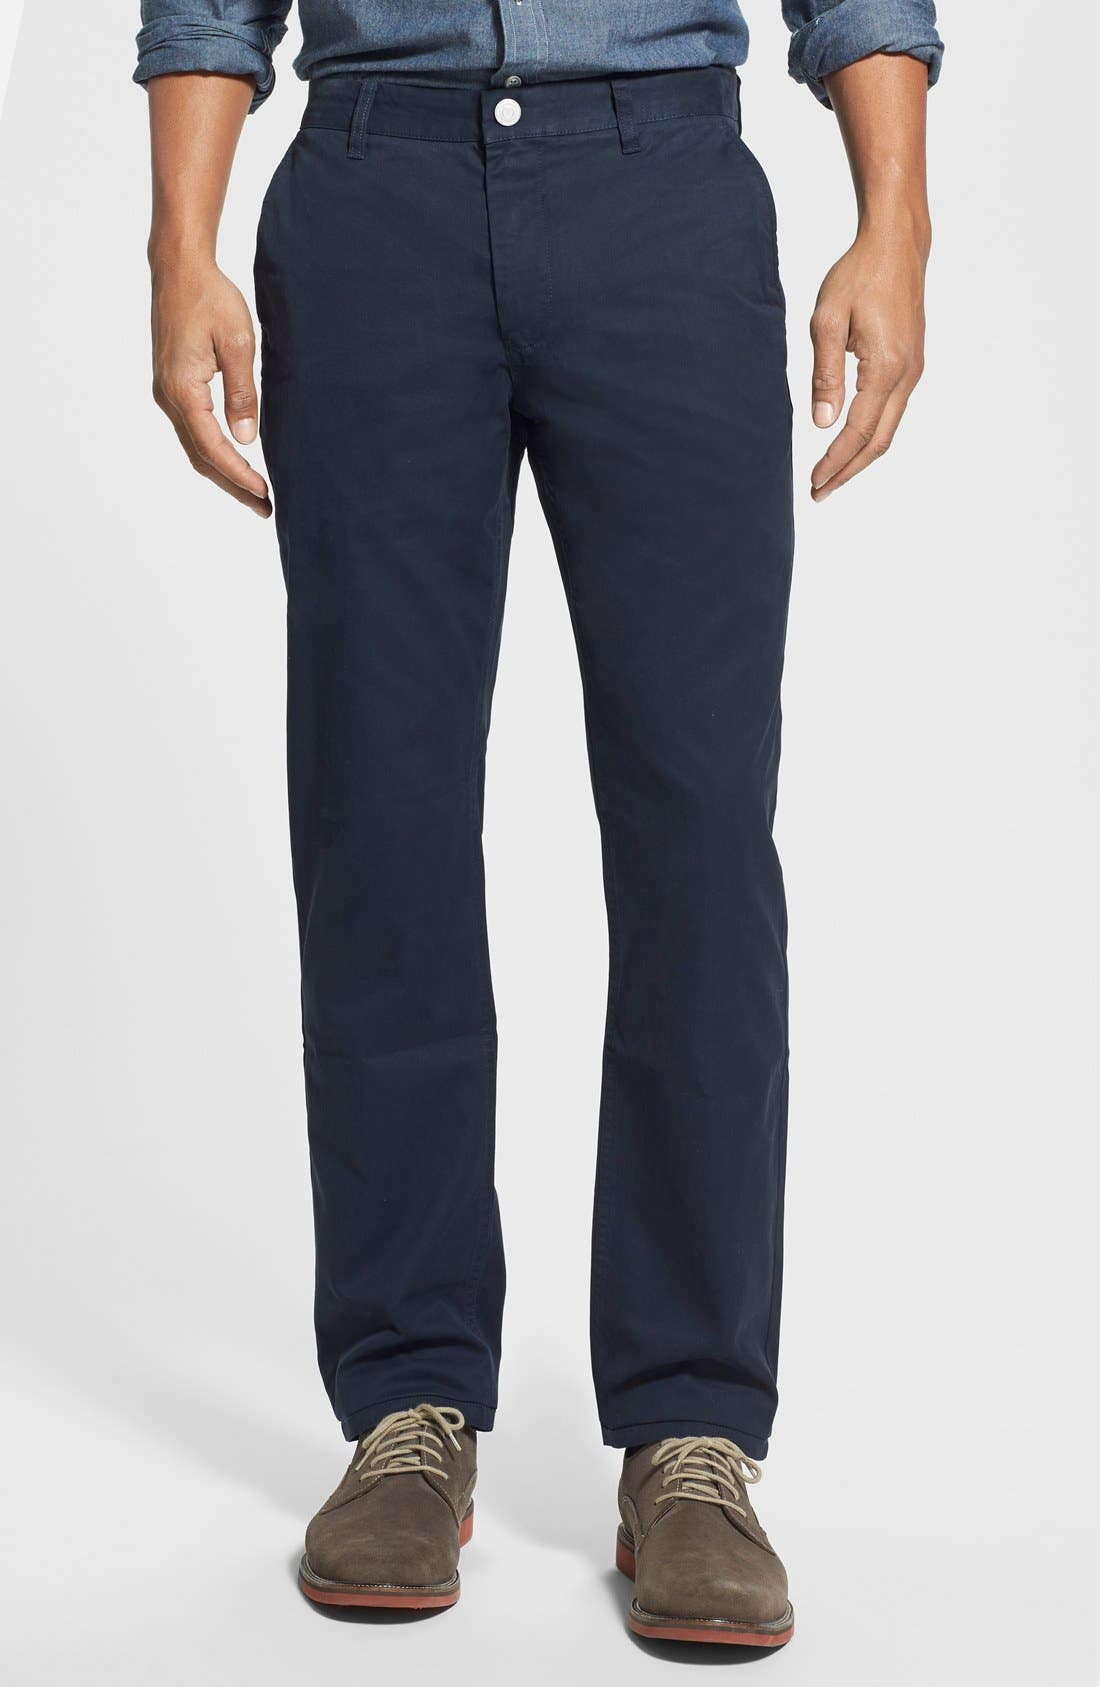 Bonobos Slim Fit Washed Chinos